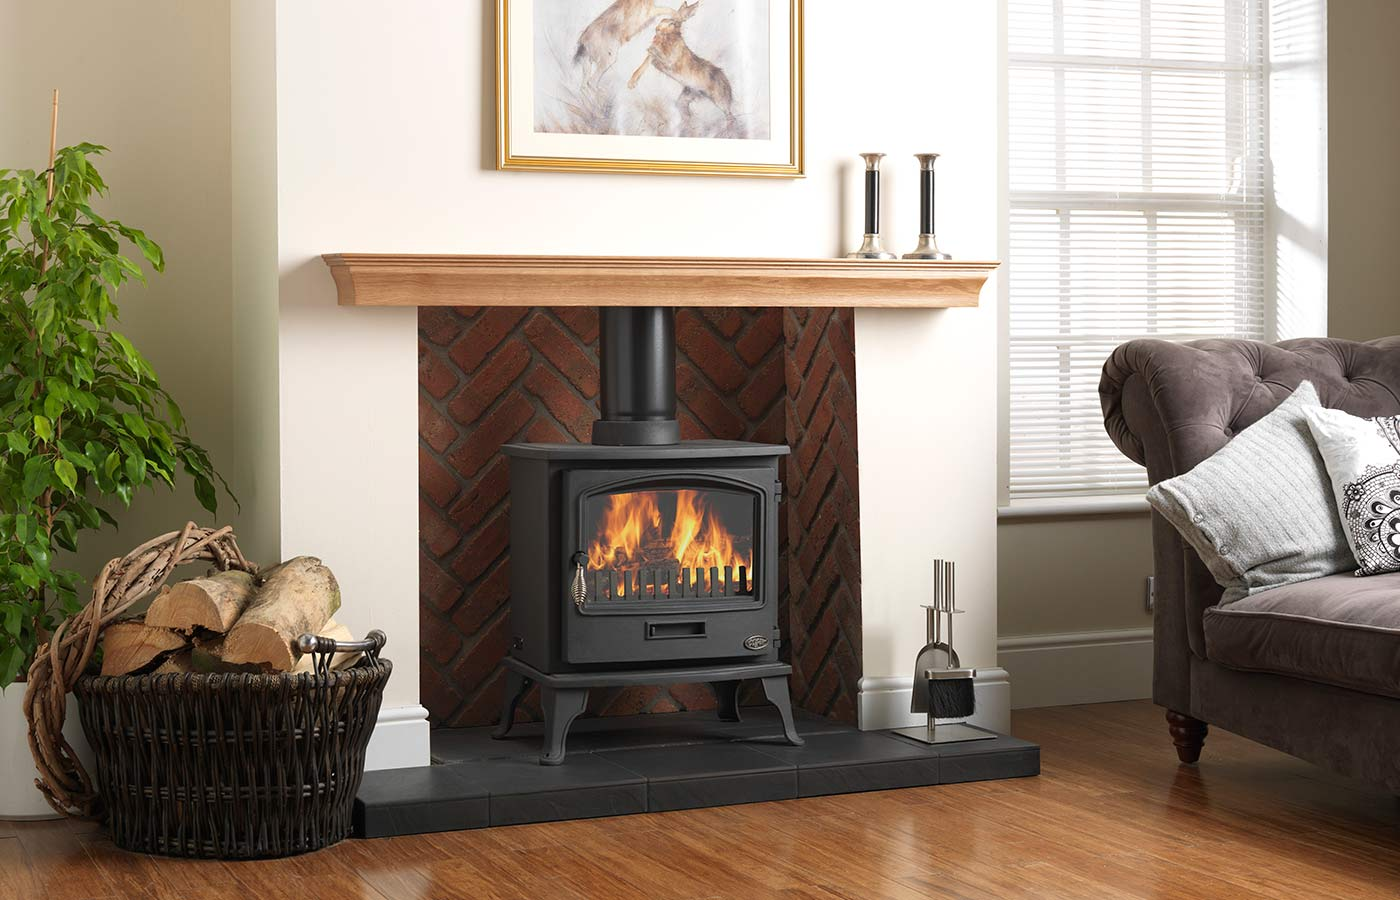 Tiger Stove with Rustic Herringbone Brick Chamber and Slabbed Porcelain Slate Hearth